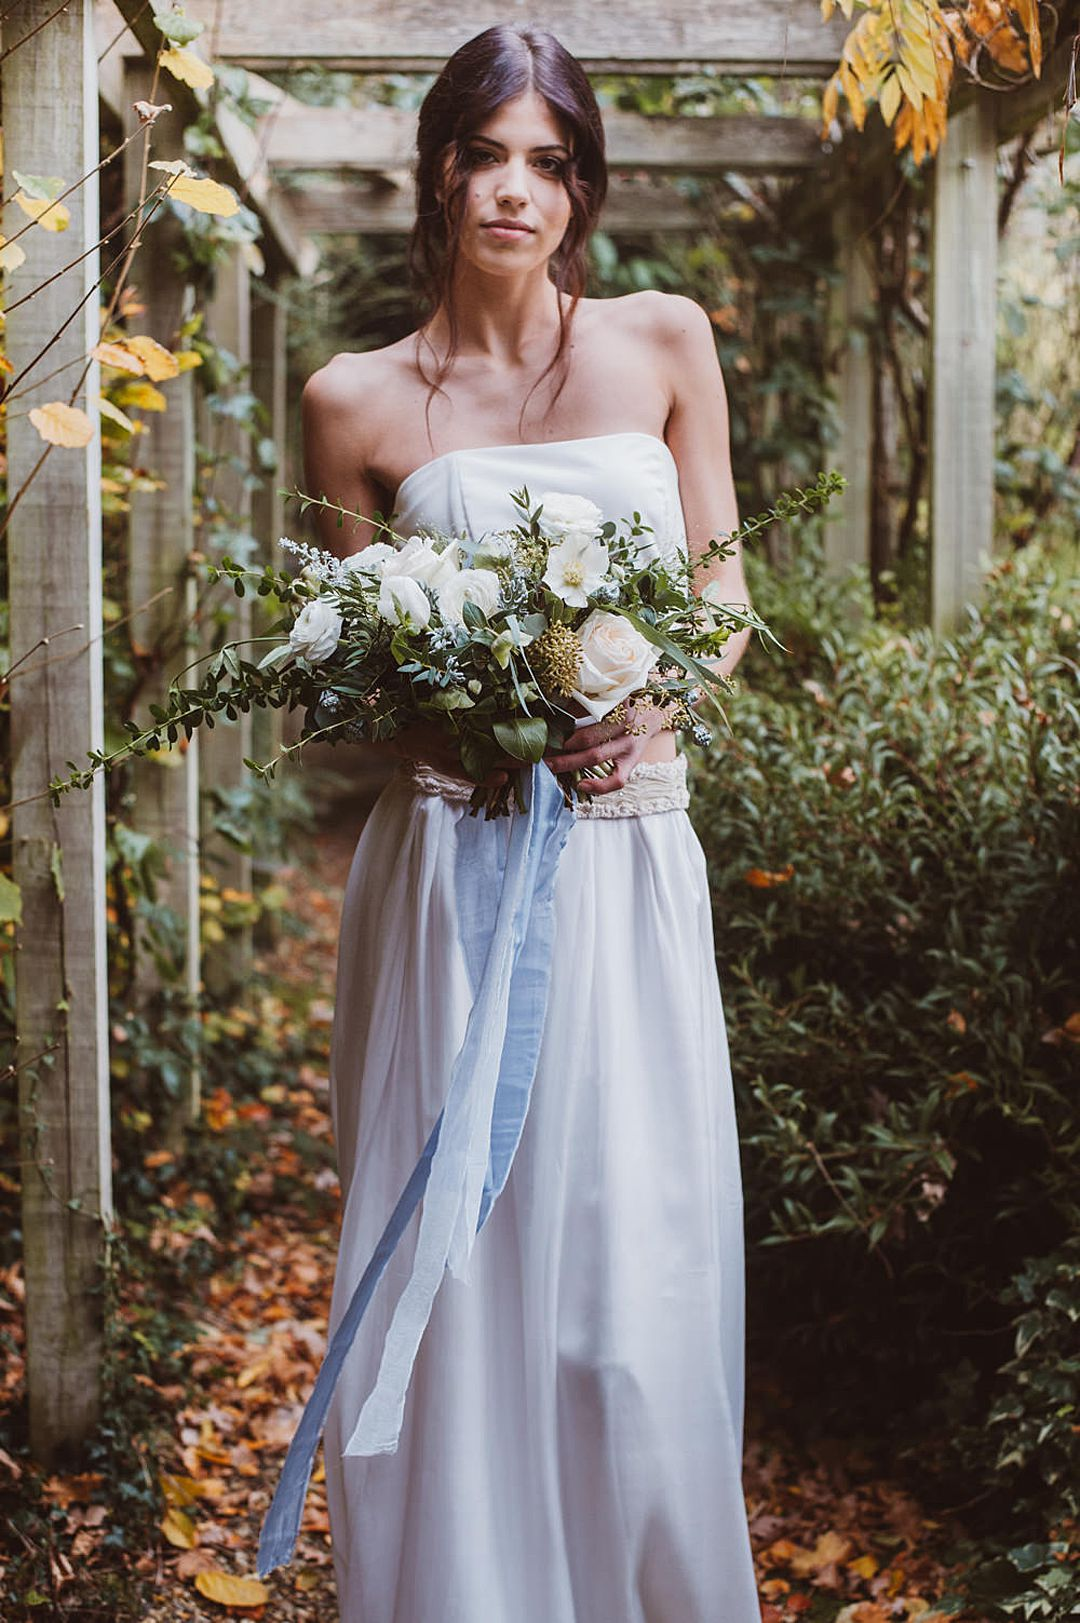 Bride with white, green and blue wedding bouquet | Paradise bodice made from silk crepe worn with an embellished silk knit and bead belt and bridal skirt by Jessica Turner Designs